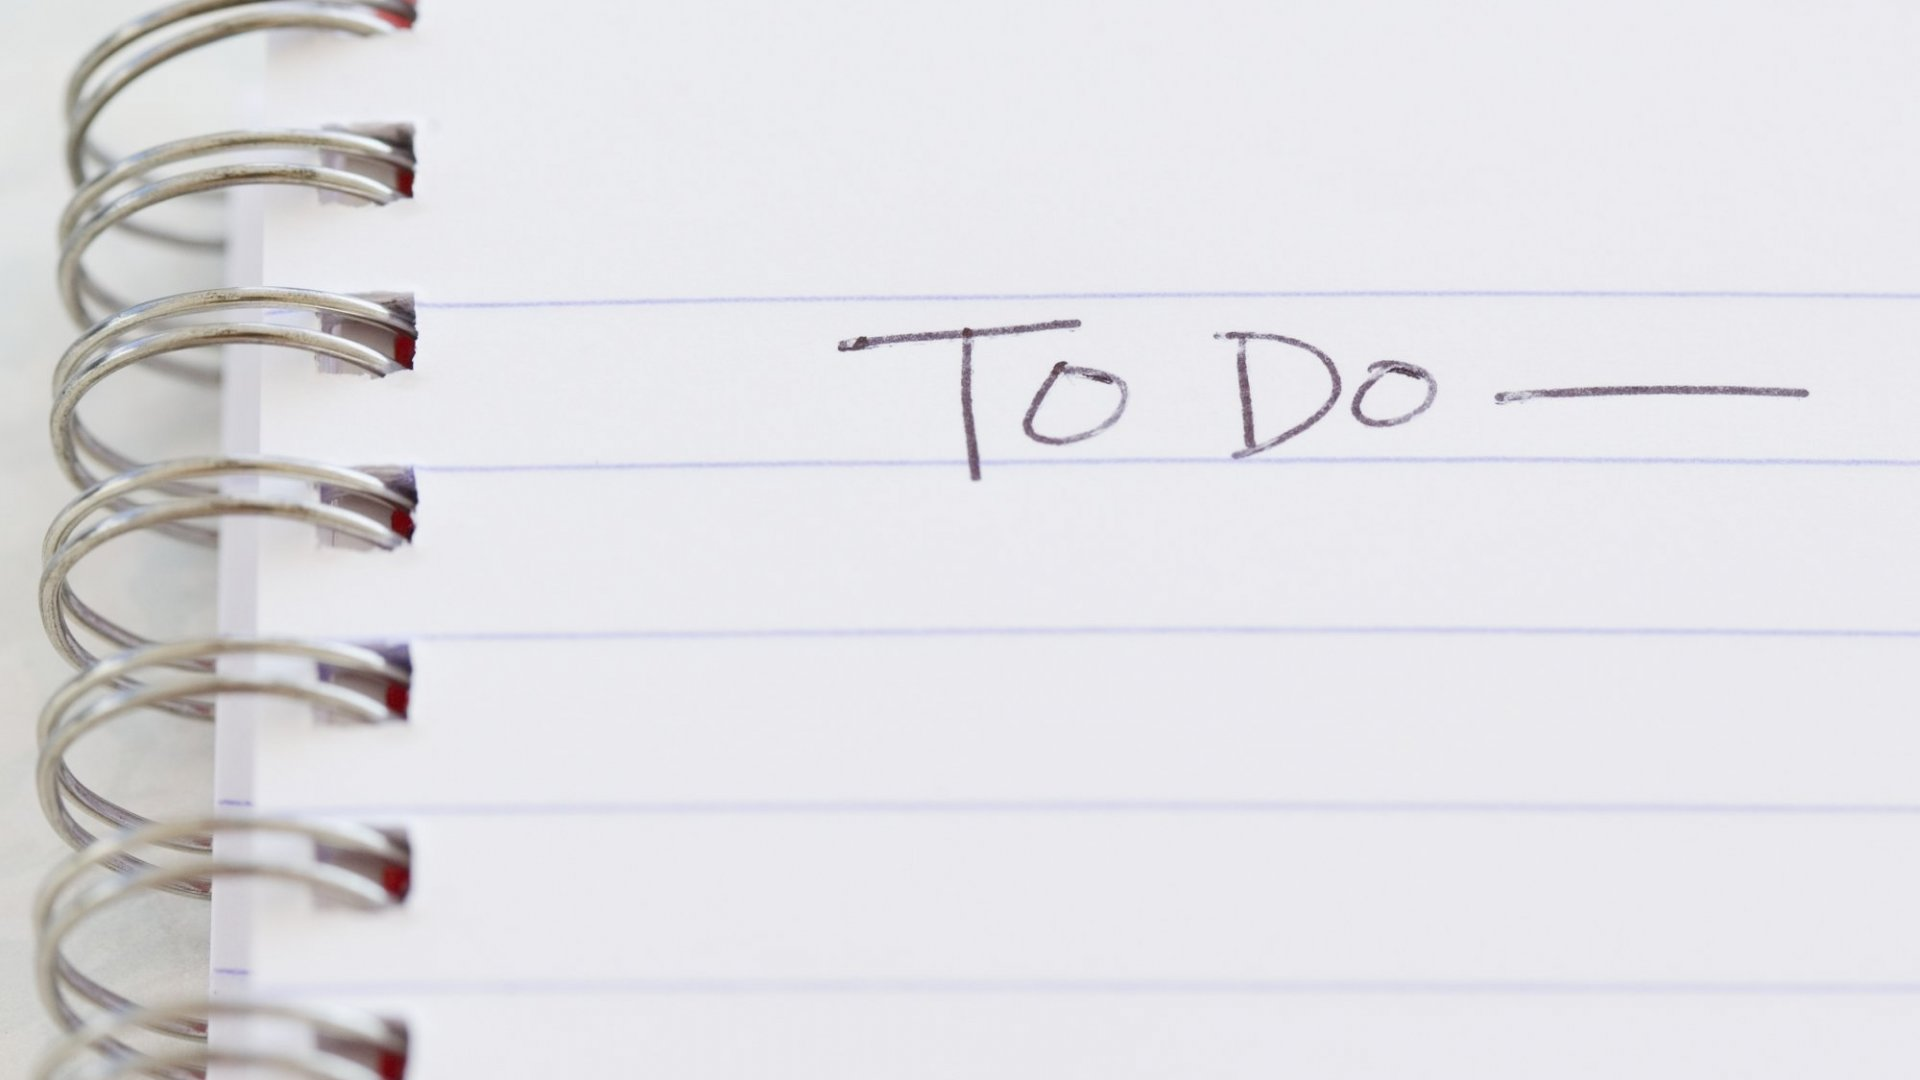 Organize Your To-Do List Into These 4 Categories